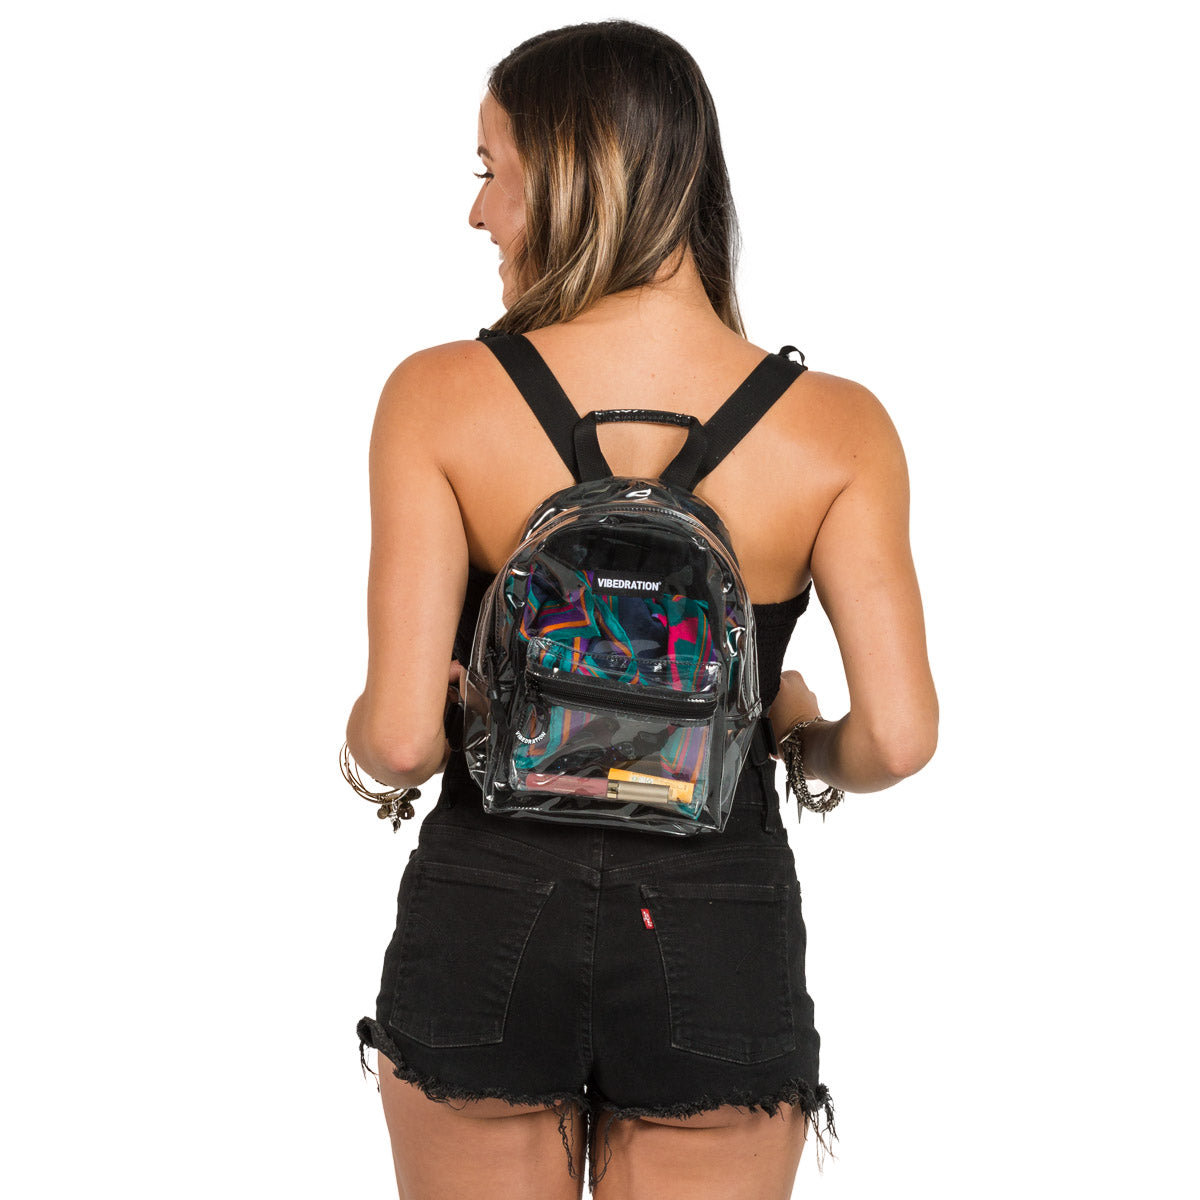 Clear Mini Backpacks for Stadiums and events